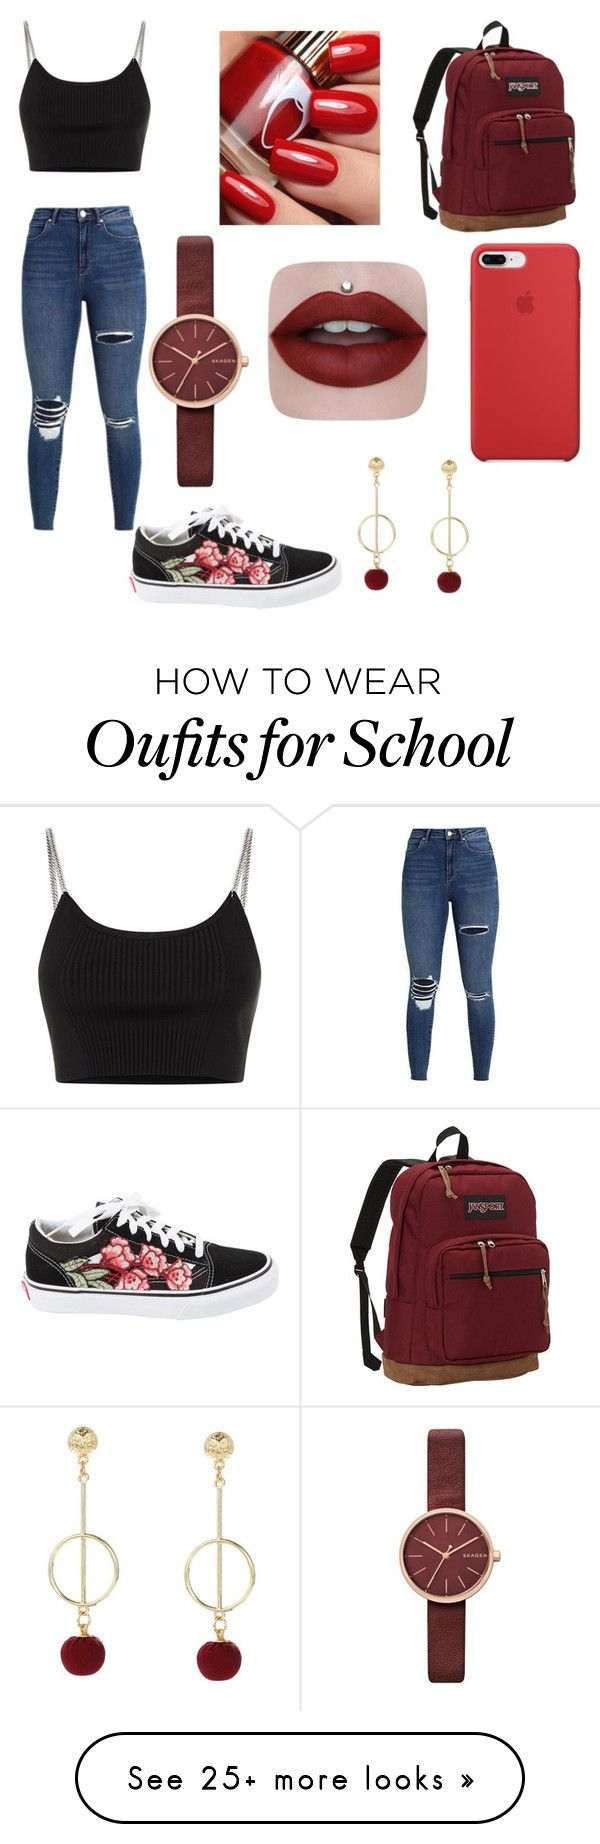 """issa00"" by mariana-magalhaes-6 on Polyvore featuring Alexander Wang, Vans, JanSport and Skagen"